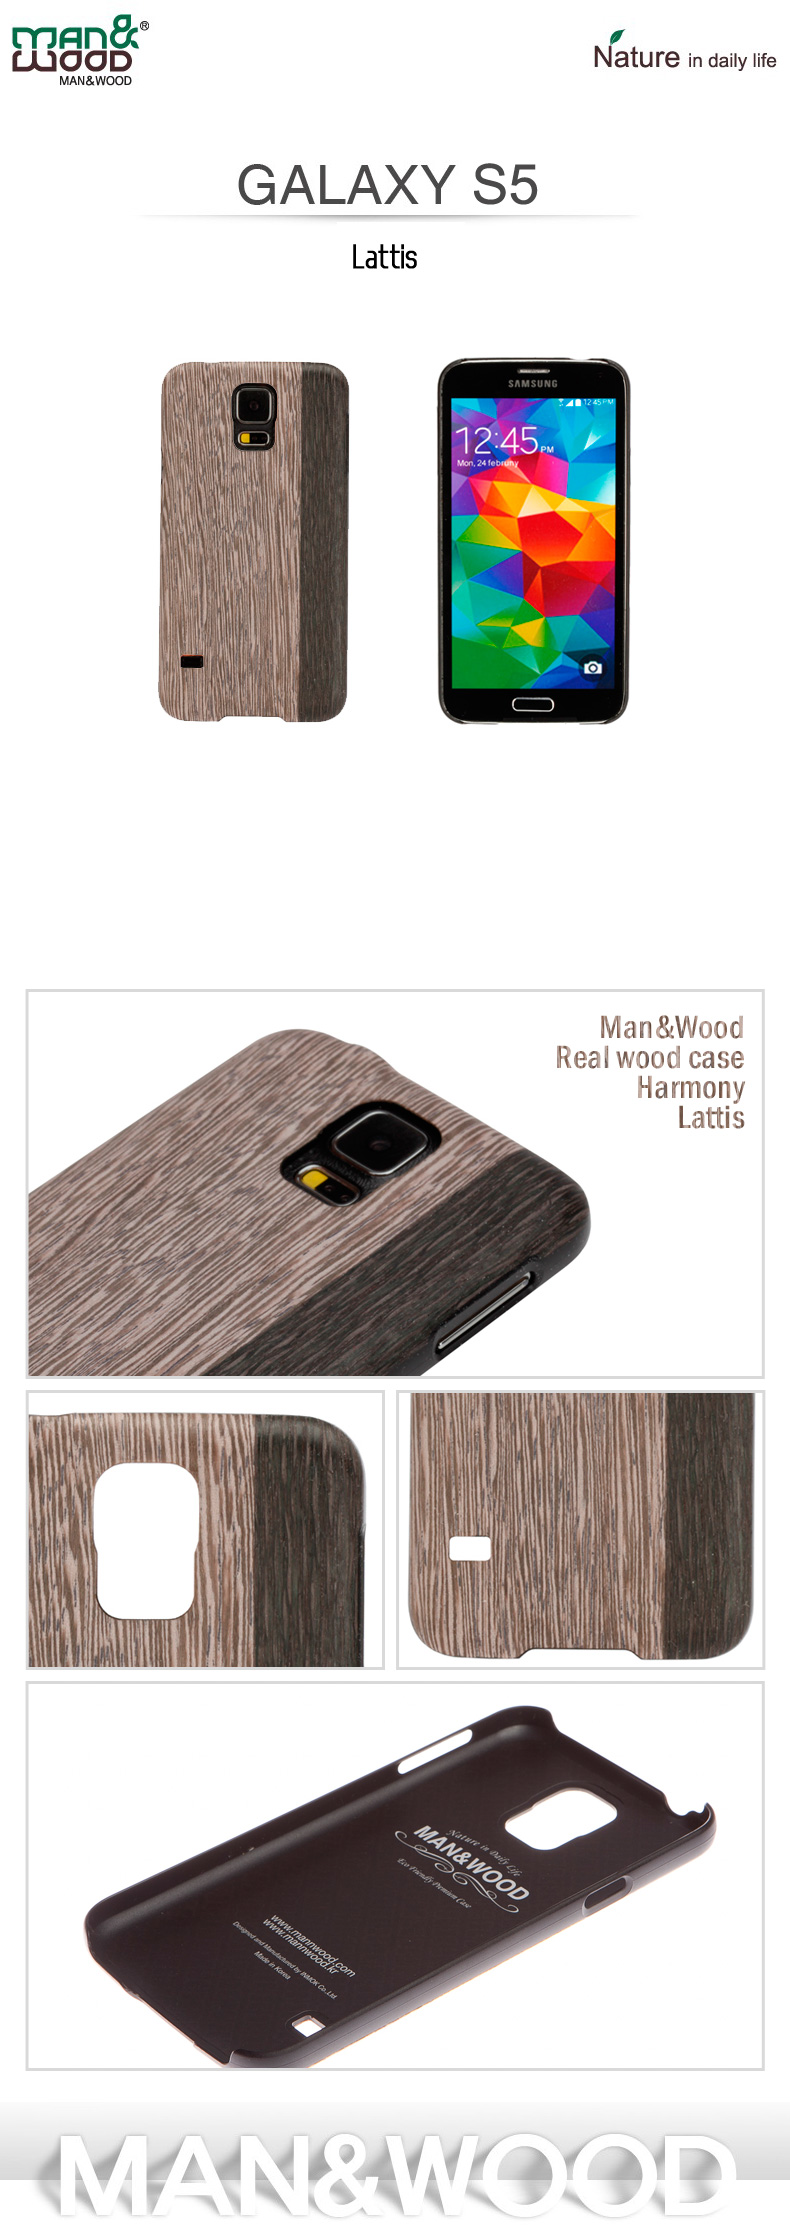 商品詳細 GALAXY S5 ケースM&W天然木Real wood cas Harmony Lattis